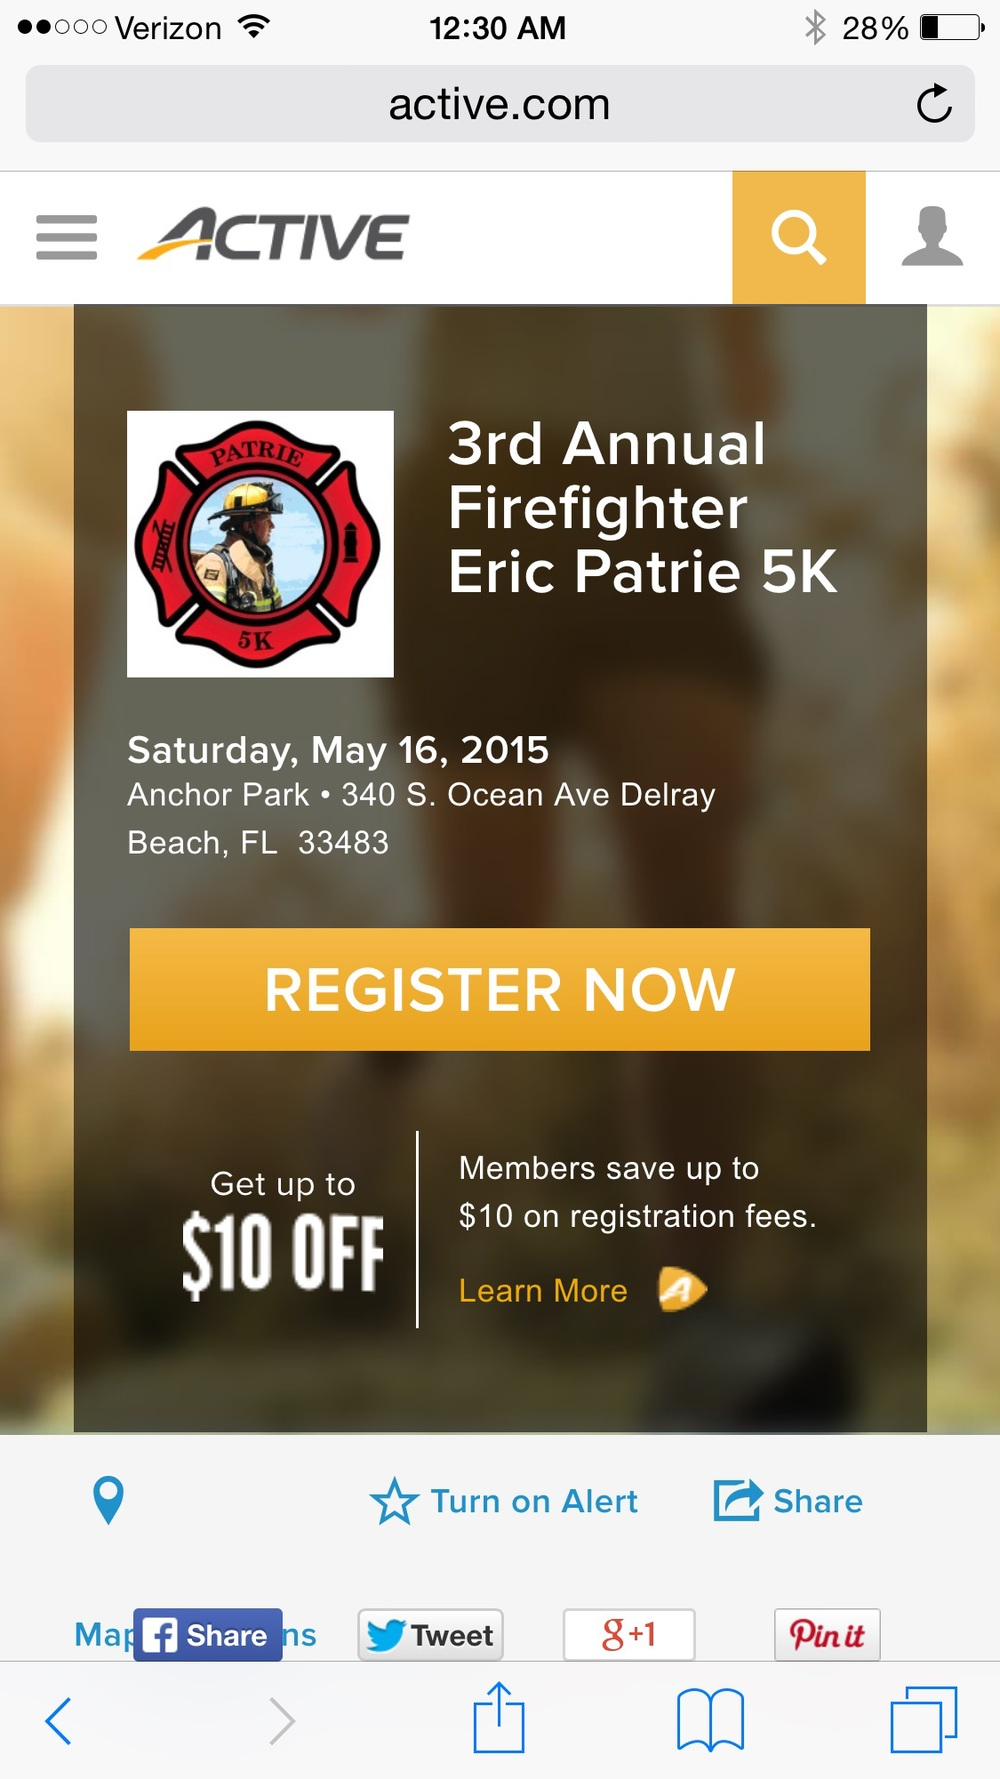 http://www.active.com/delray-beach-fl/running/distance-running-races/3rd-annual-firefighter-eric-patrie-5k-2015?int=72-3-A1